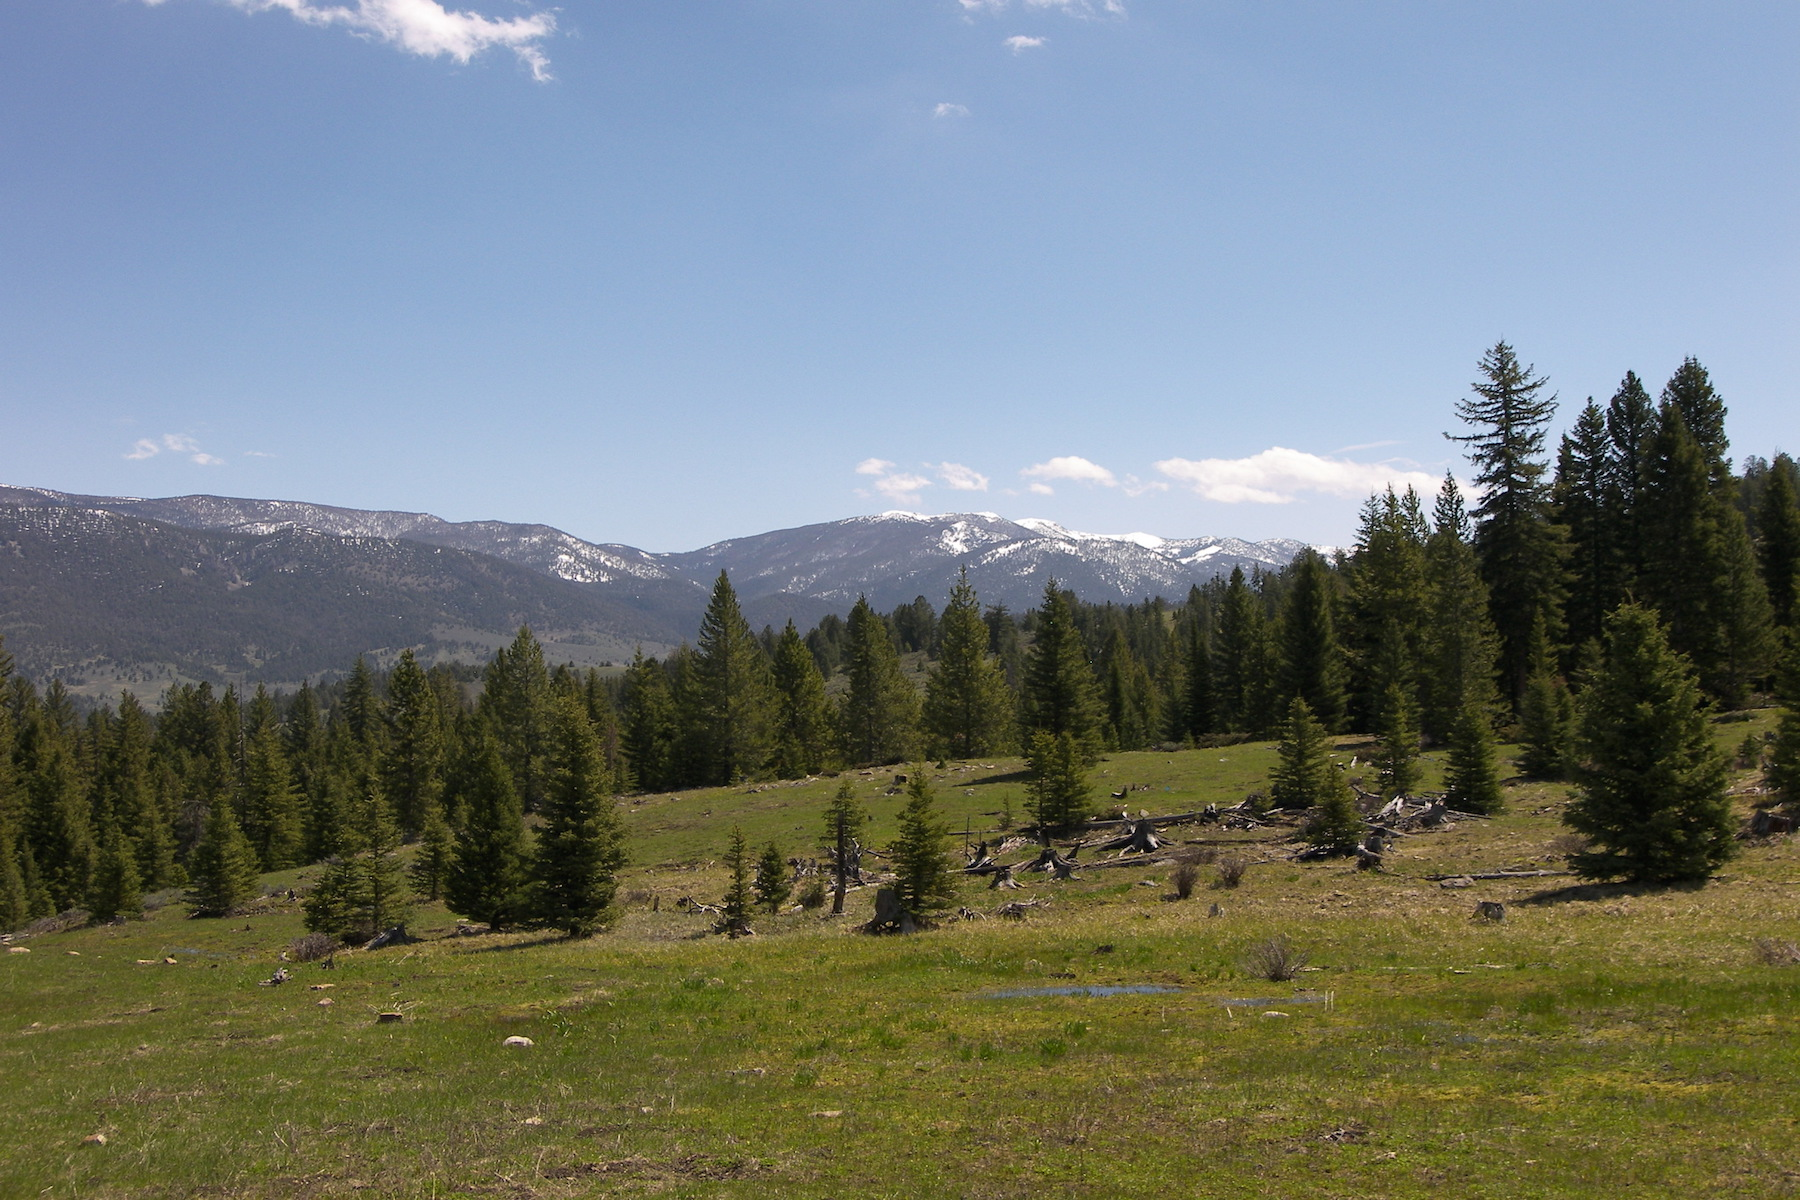 Terreno por un Venta en Private Towering Pines Acreage Towering Pines Lot 14 Big Sky, Montana 59716 Estados Unidos